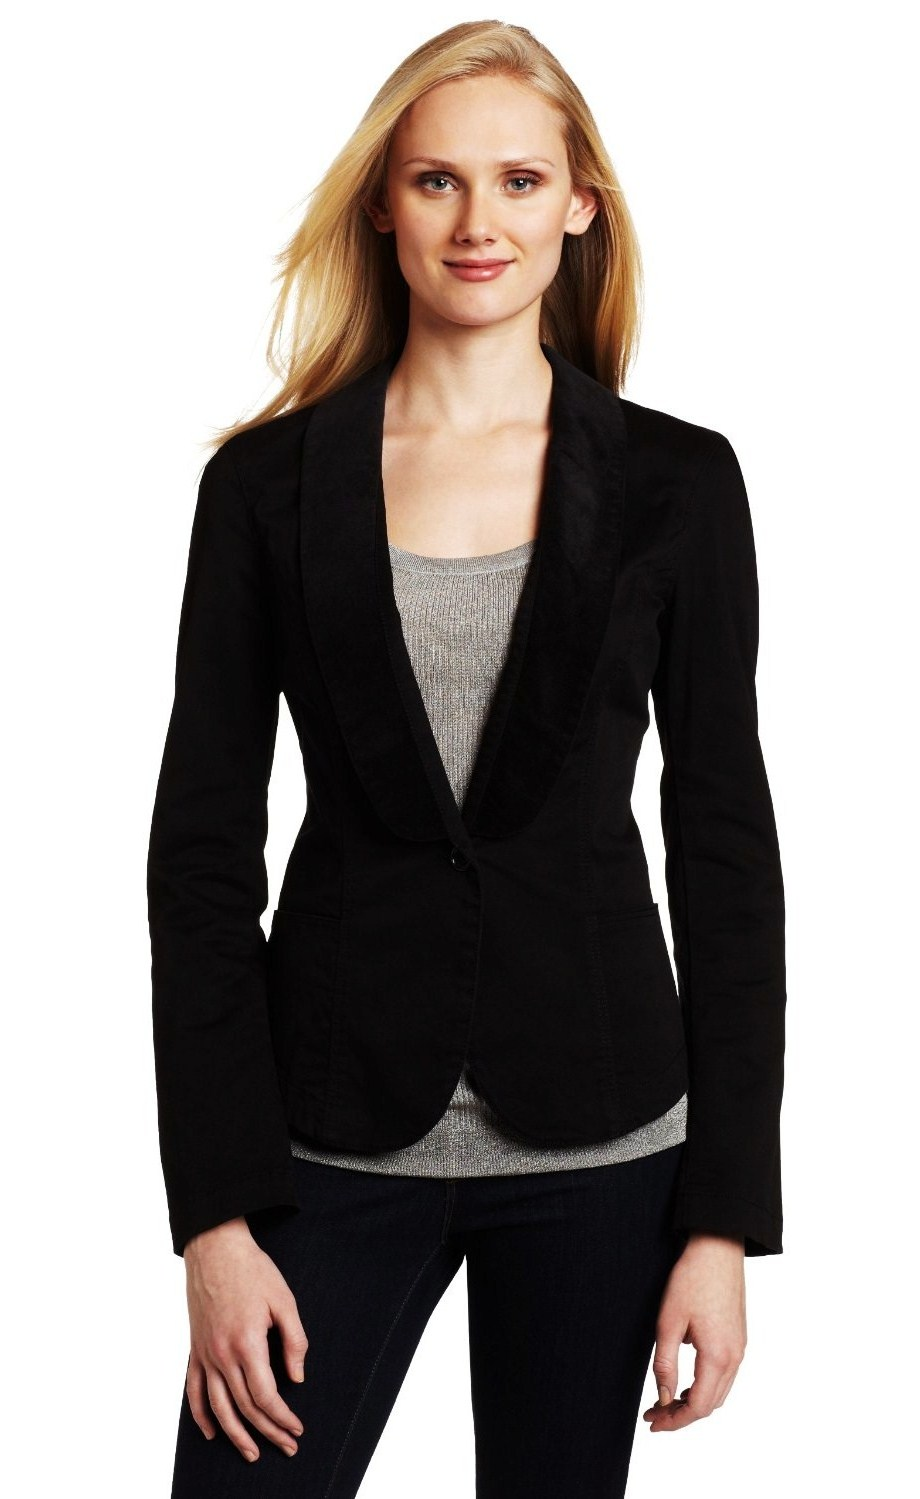 Formal Blazers - Buy Formal Blazers Online for Women - Browse new arrival in Formal Blazers, Check latest price in India and shop at India's favourite online store Free Shipping COD 30 Days Exchange Best Offers.